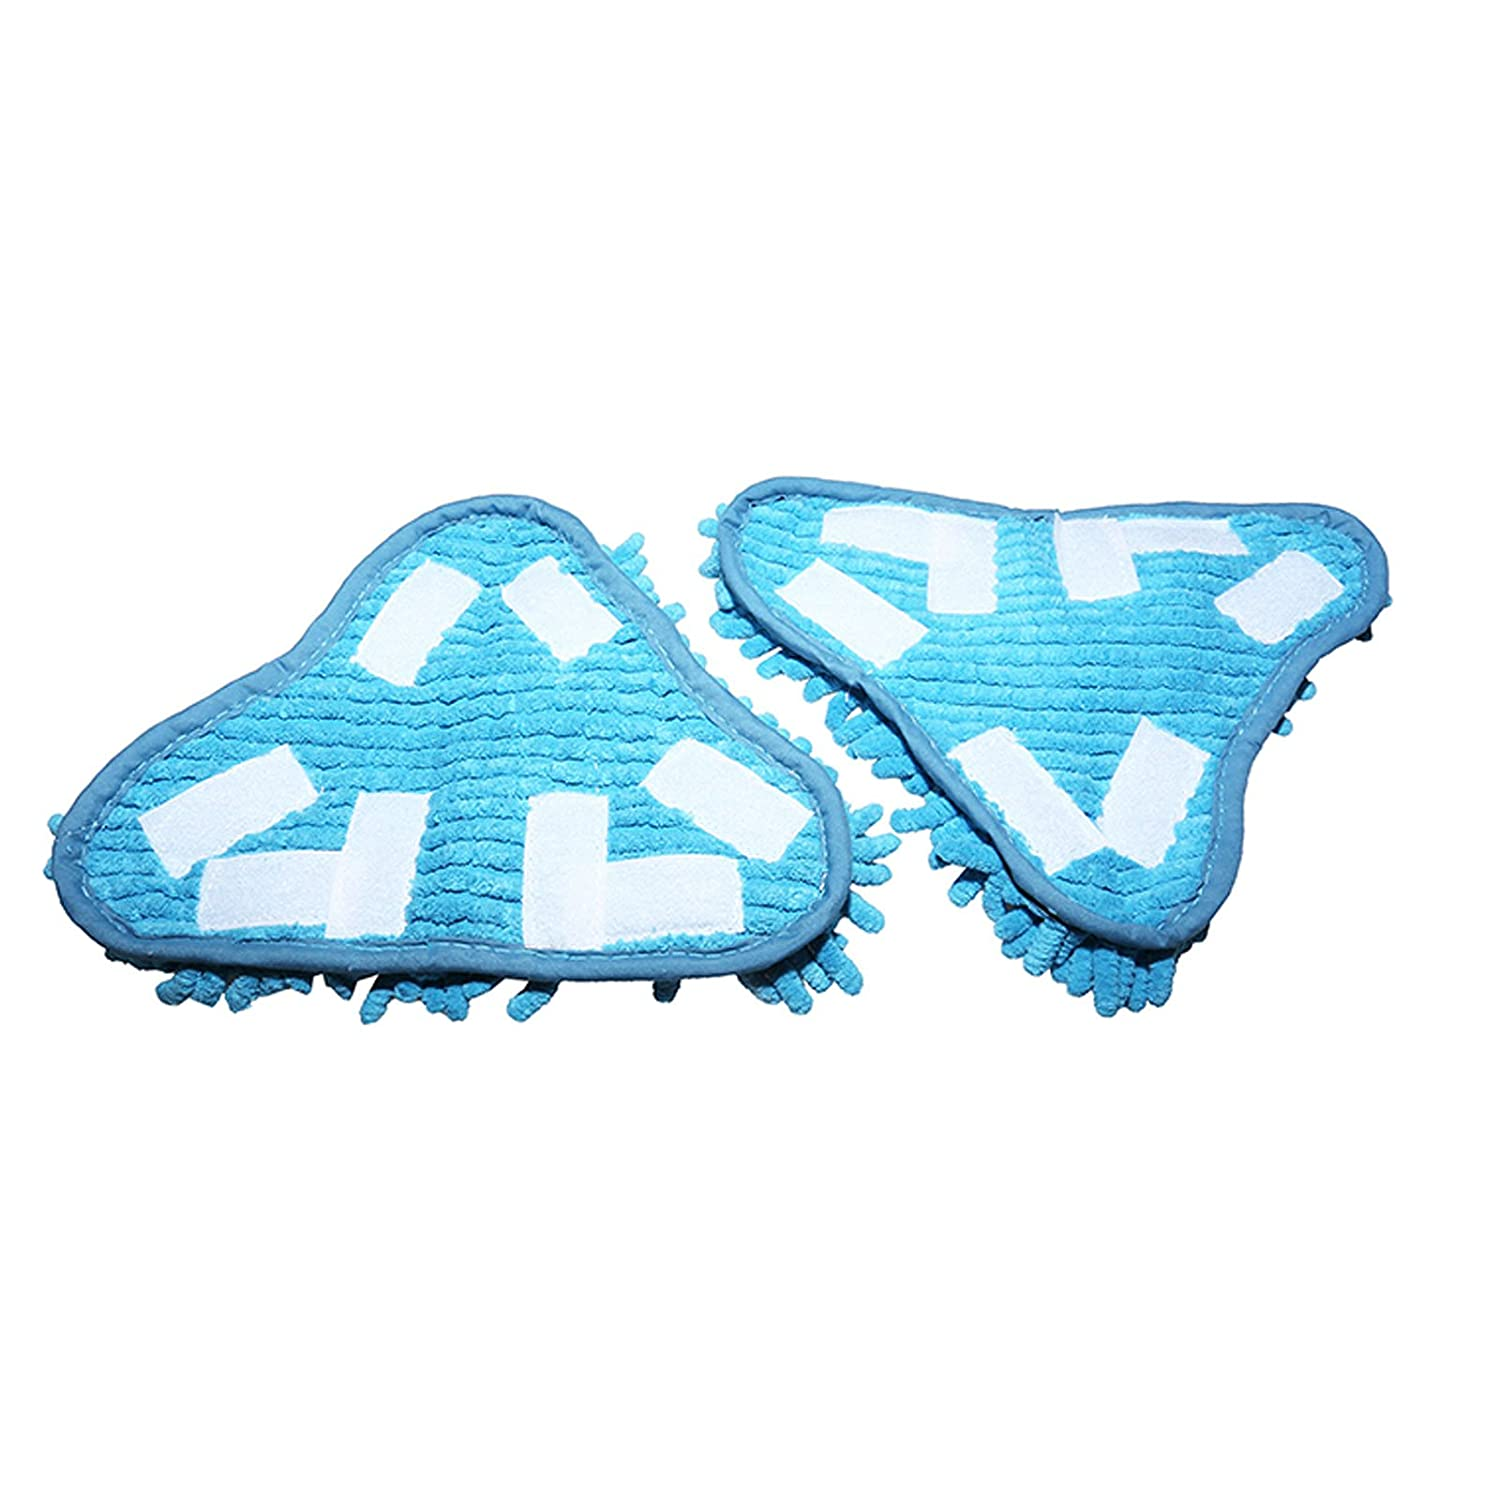 Twin Pack First4Spares Washable Microfibre Floor Pads for Thane H20 /& H20X5 Steam Mops